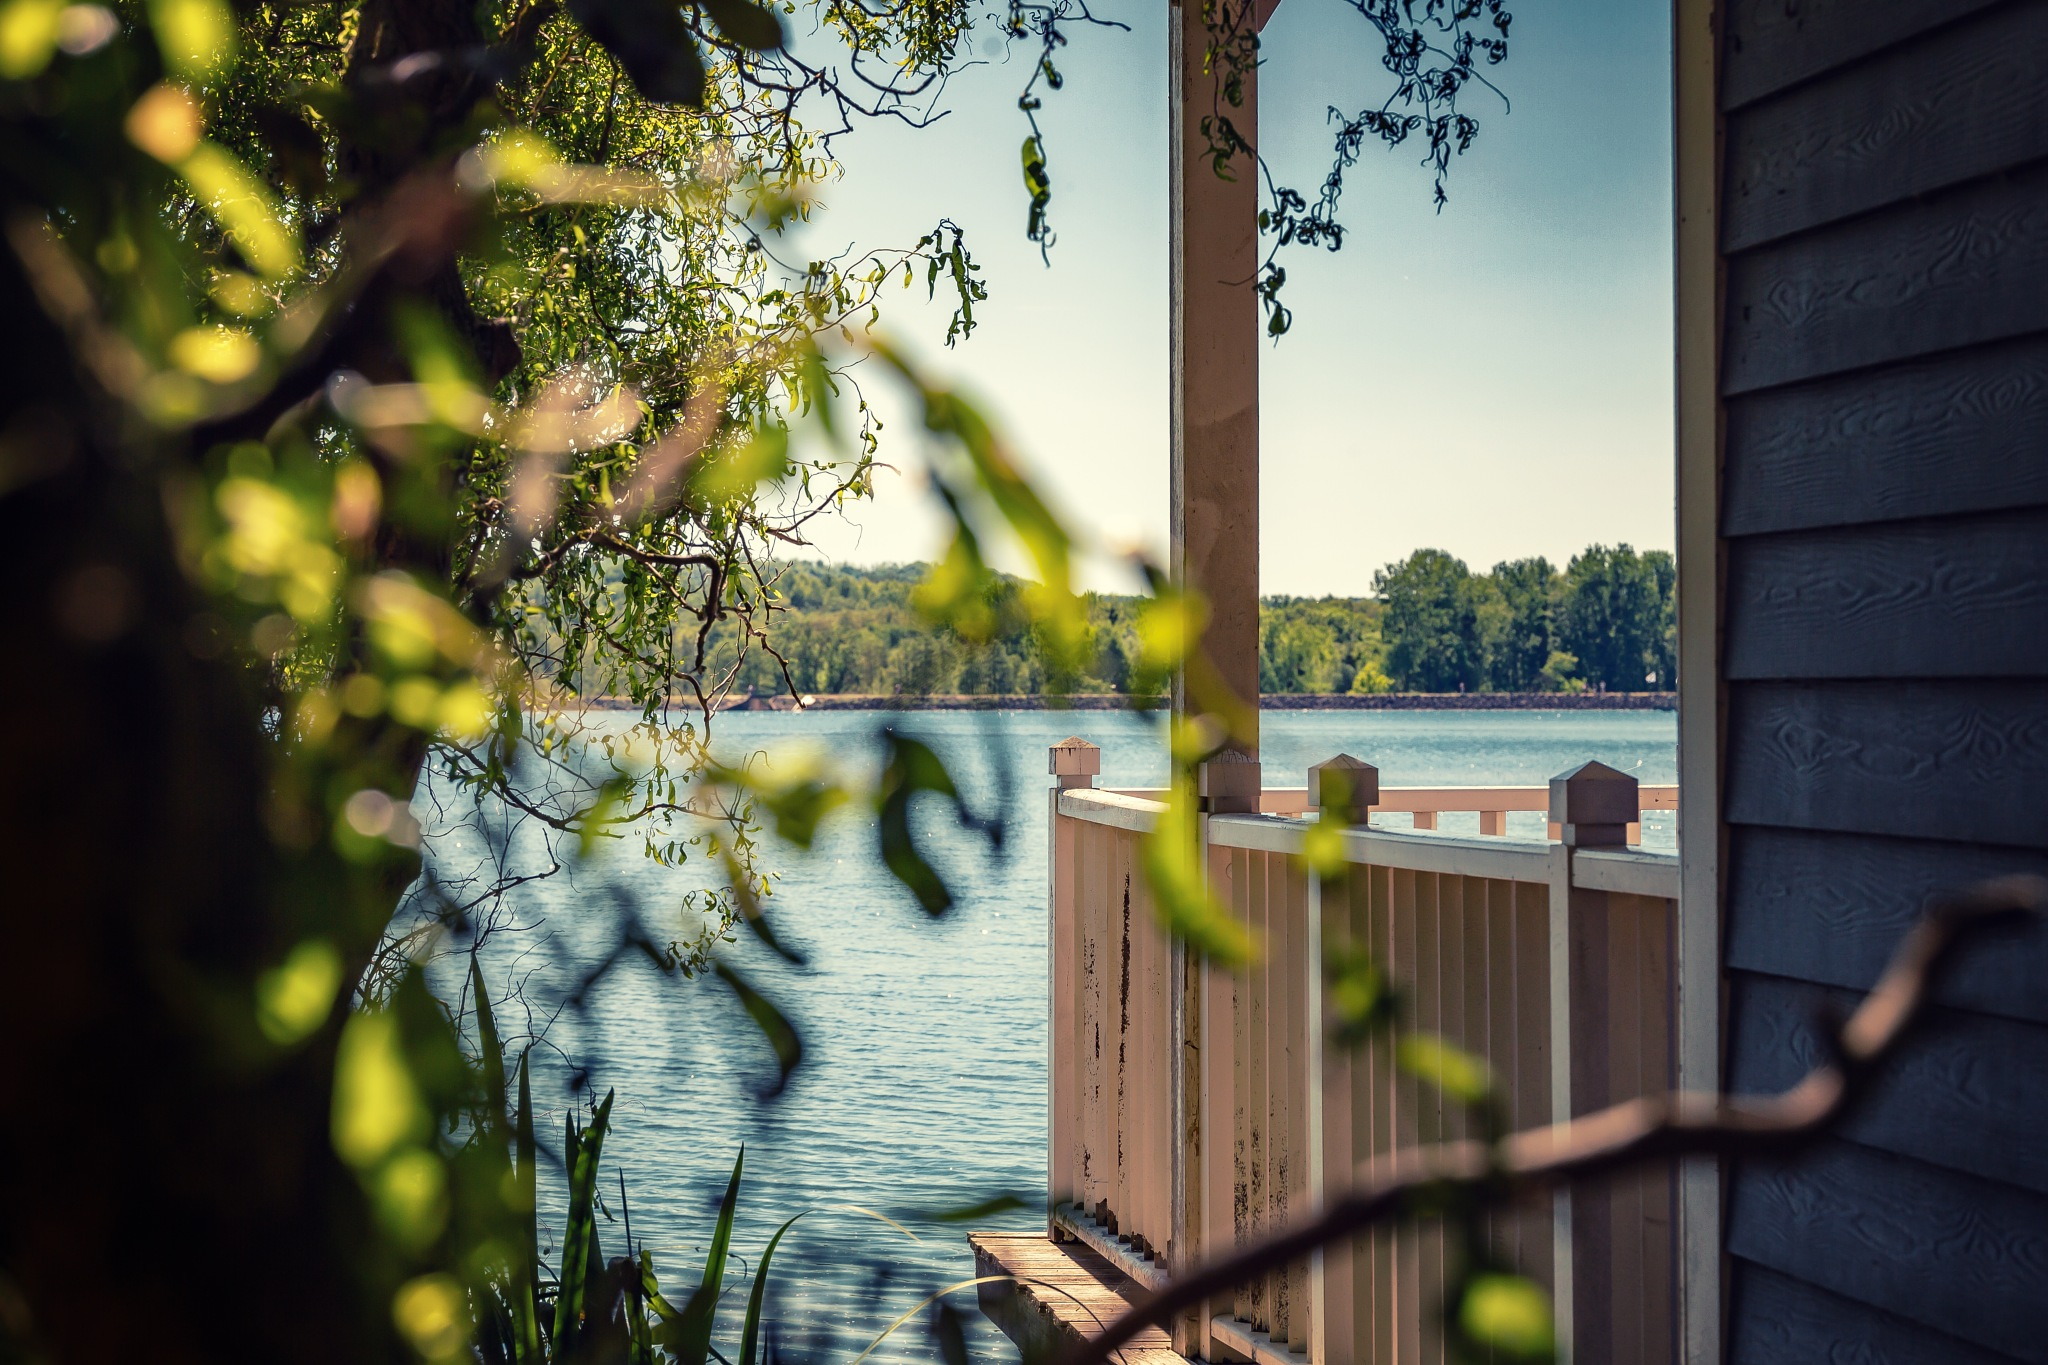 Another point of view of this cute lake by Chris Butler